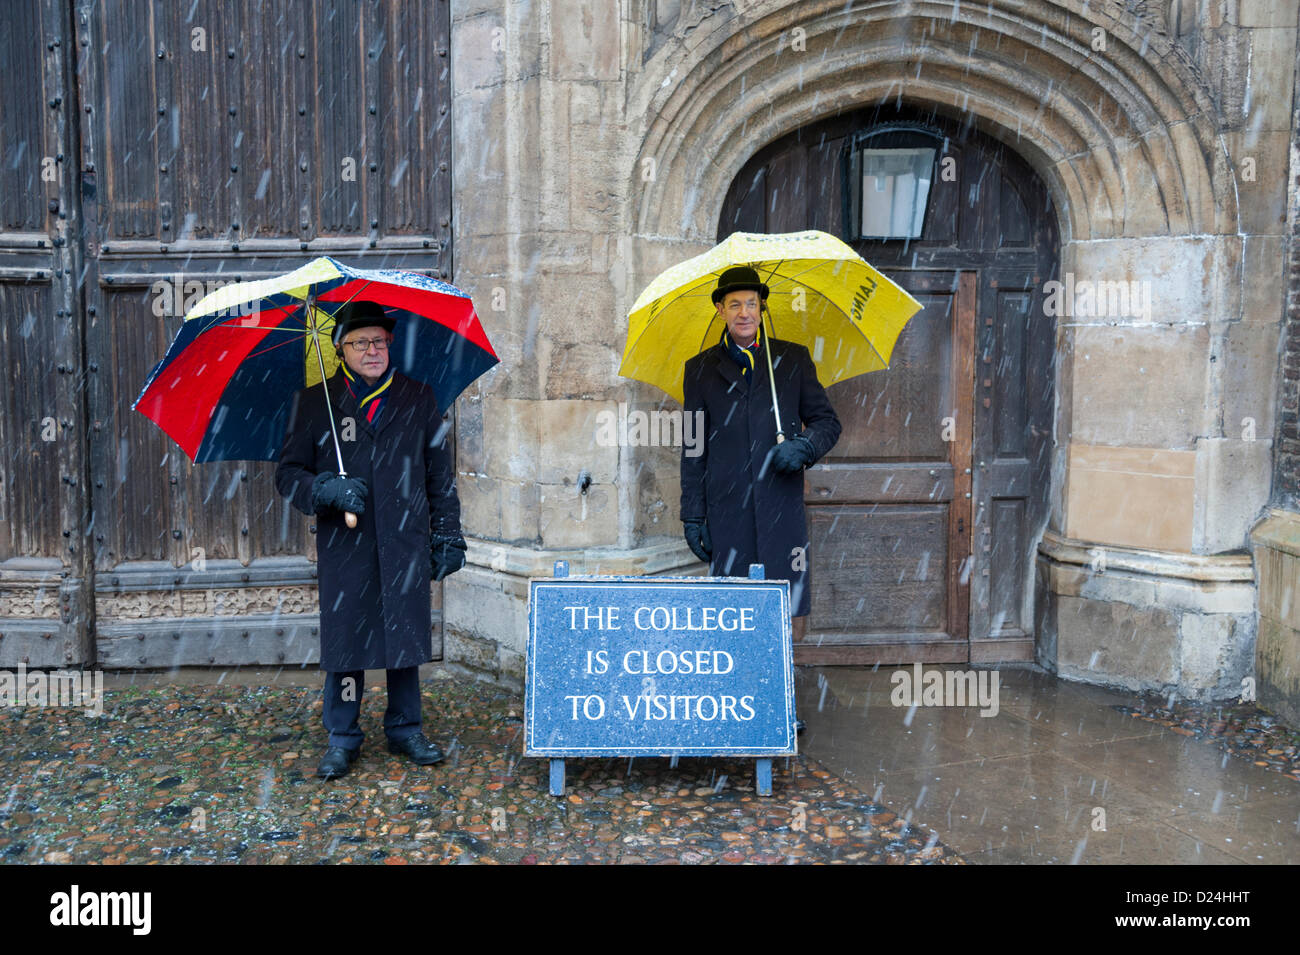 Cambridge UK 14th January 2013.  Porters shelter from the snow under umbrellas outside Trinity College Cambridge. - Stock Image